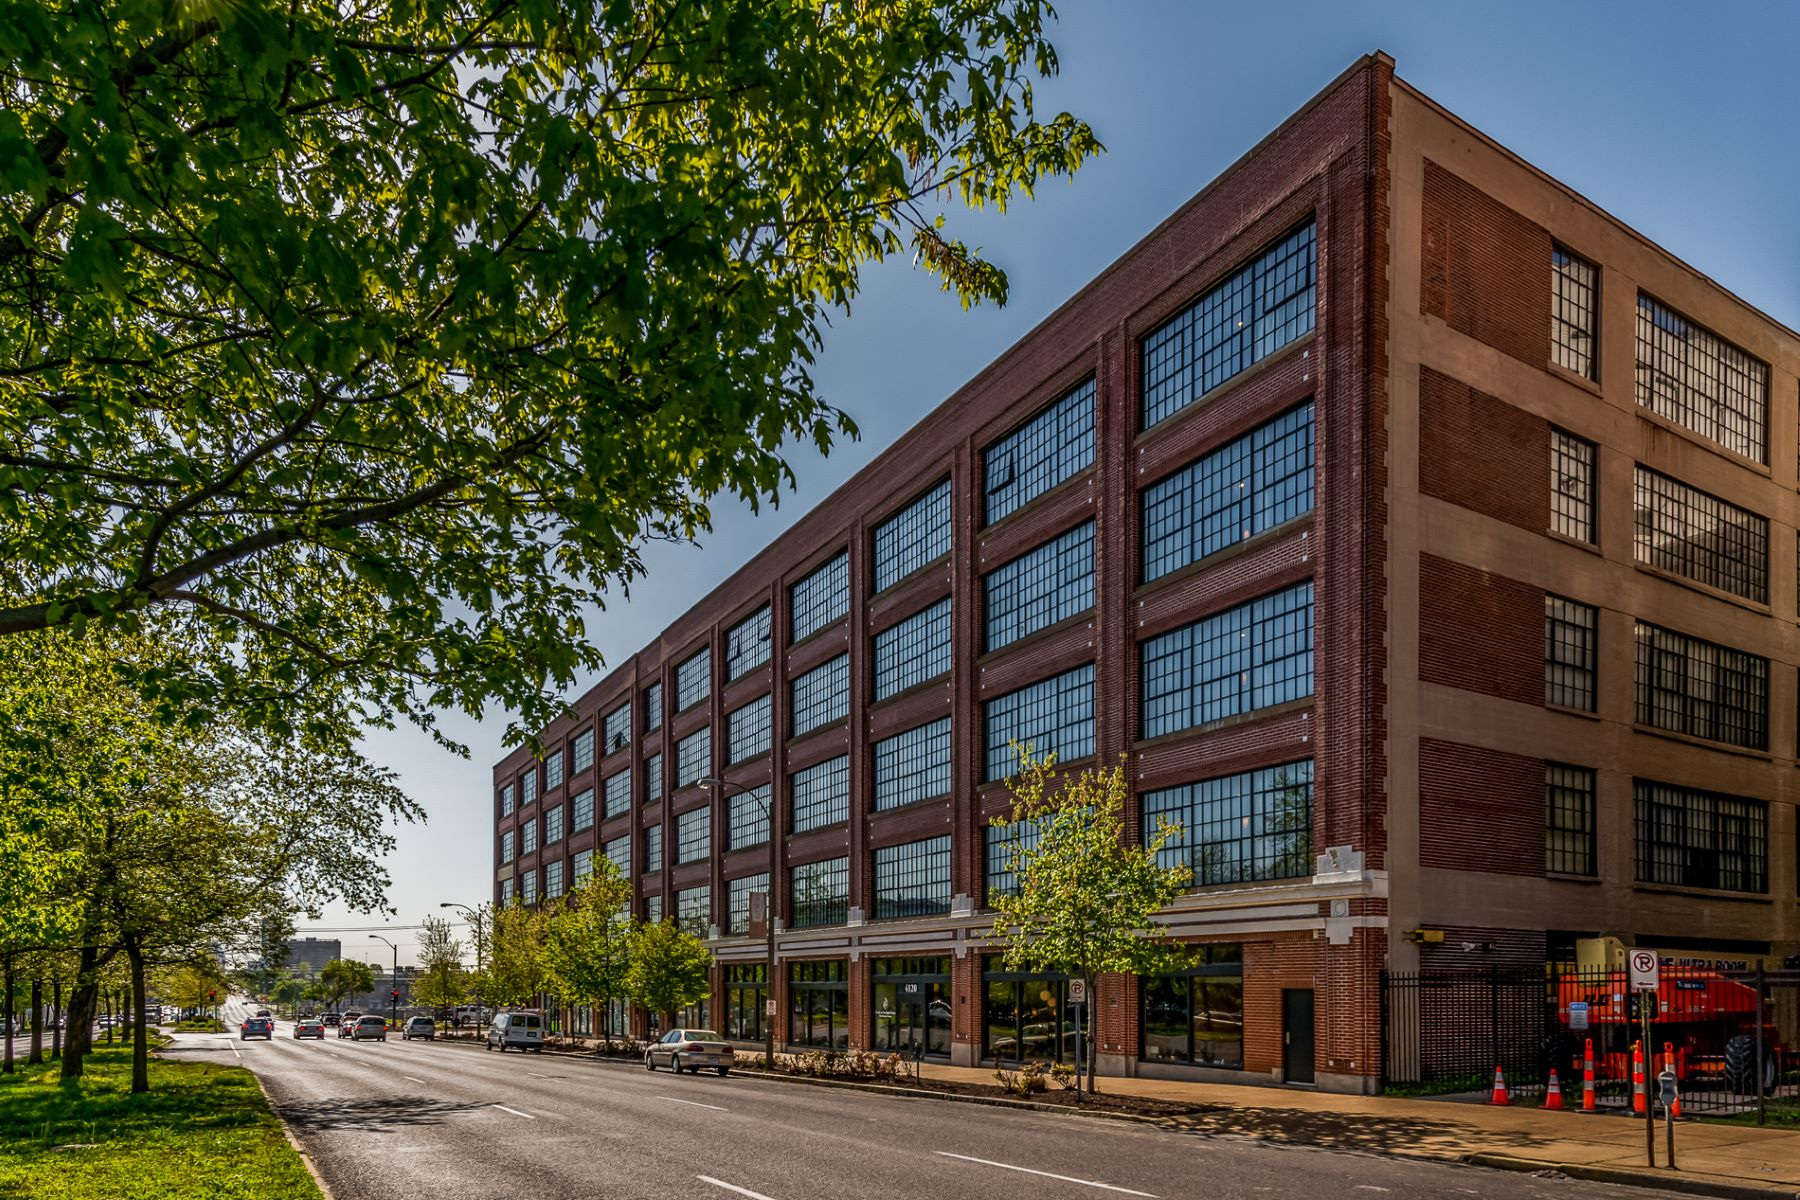 Property for Sale at West End Lofts #427 4100 Forest Park Ave #427 St. Louis, Missouri 63108 United States